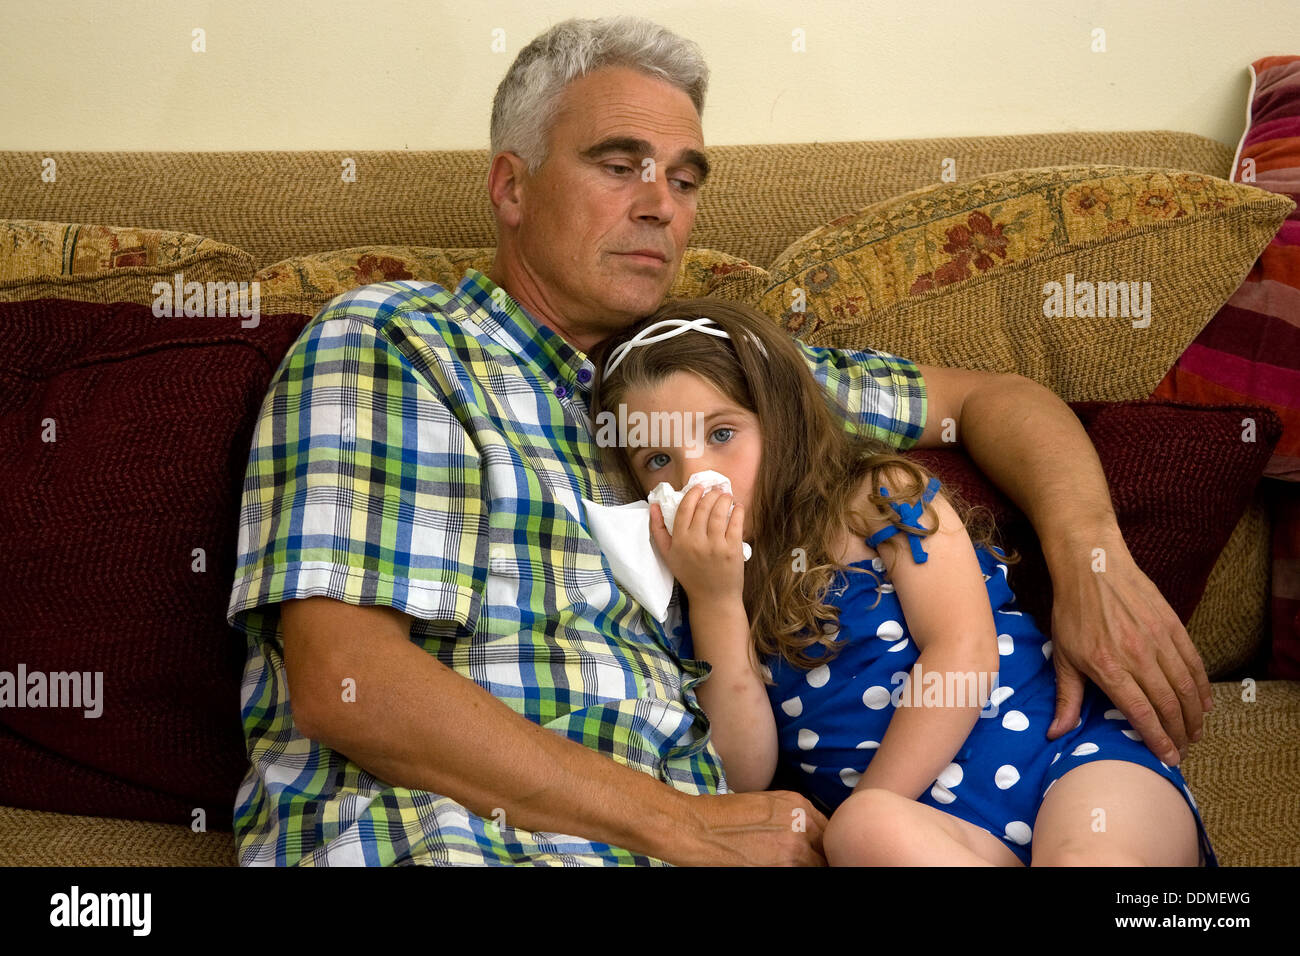 father daughter at home - Stock Image